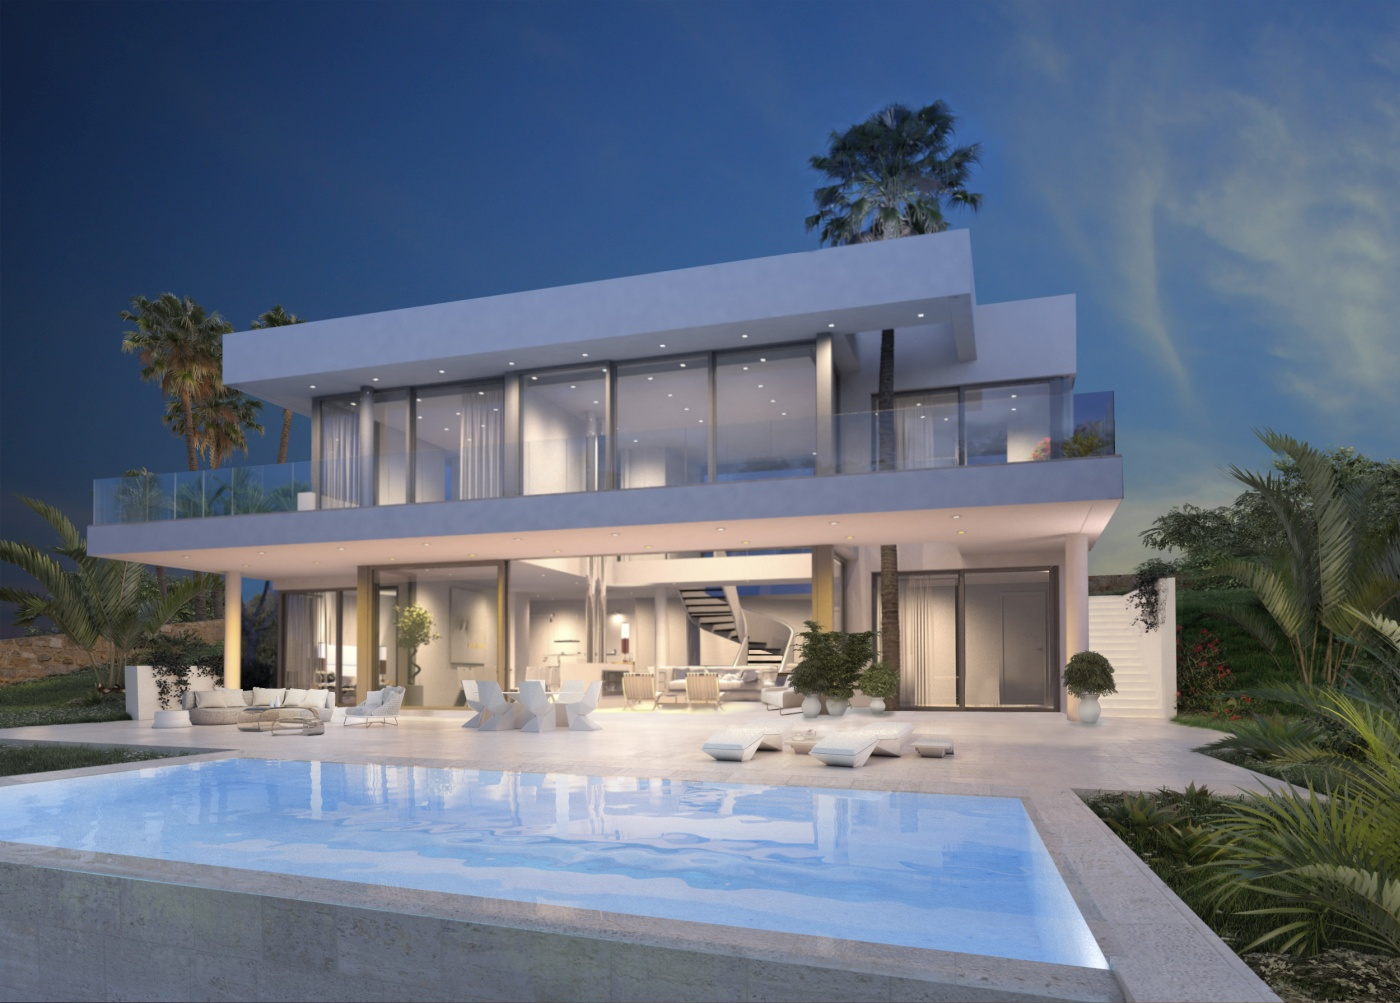 New modern villas in sotogrande